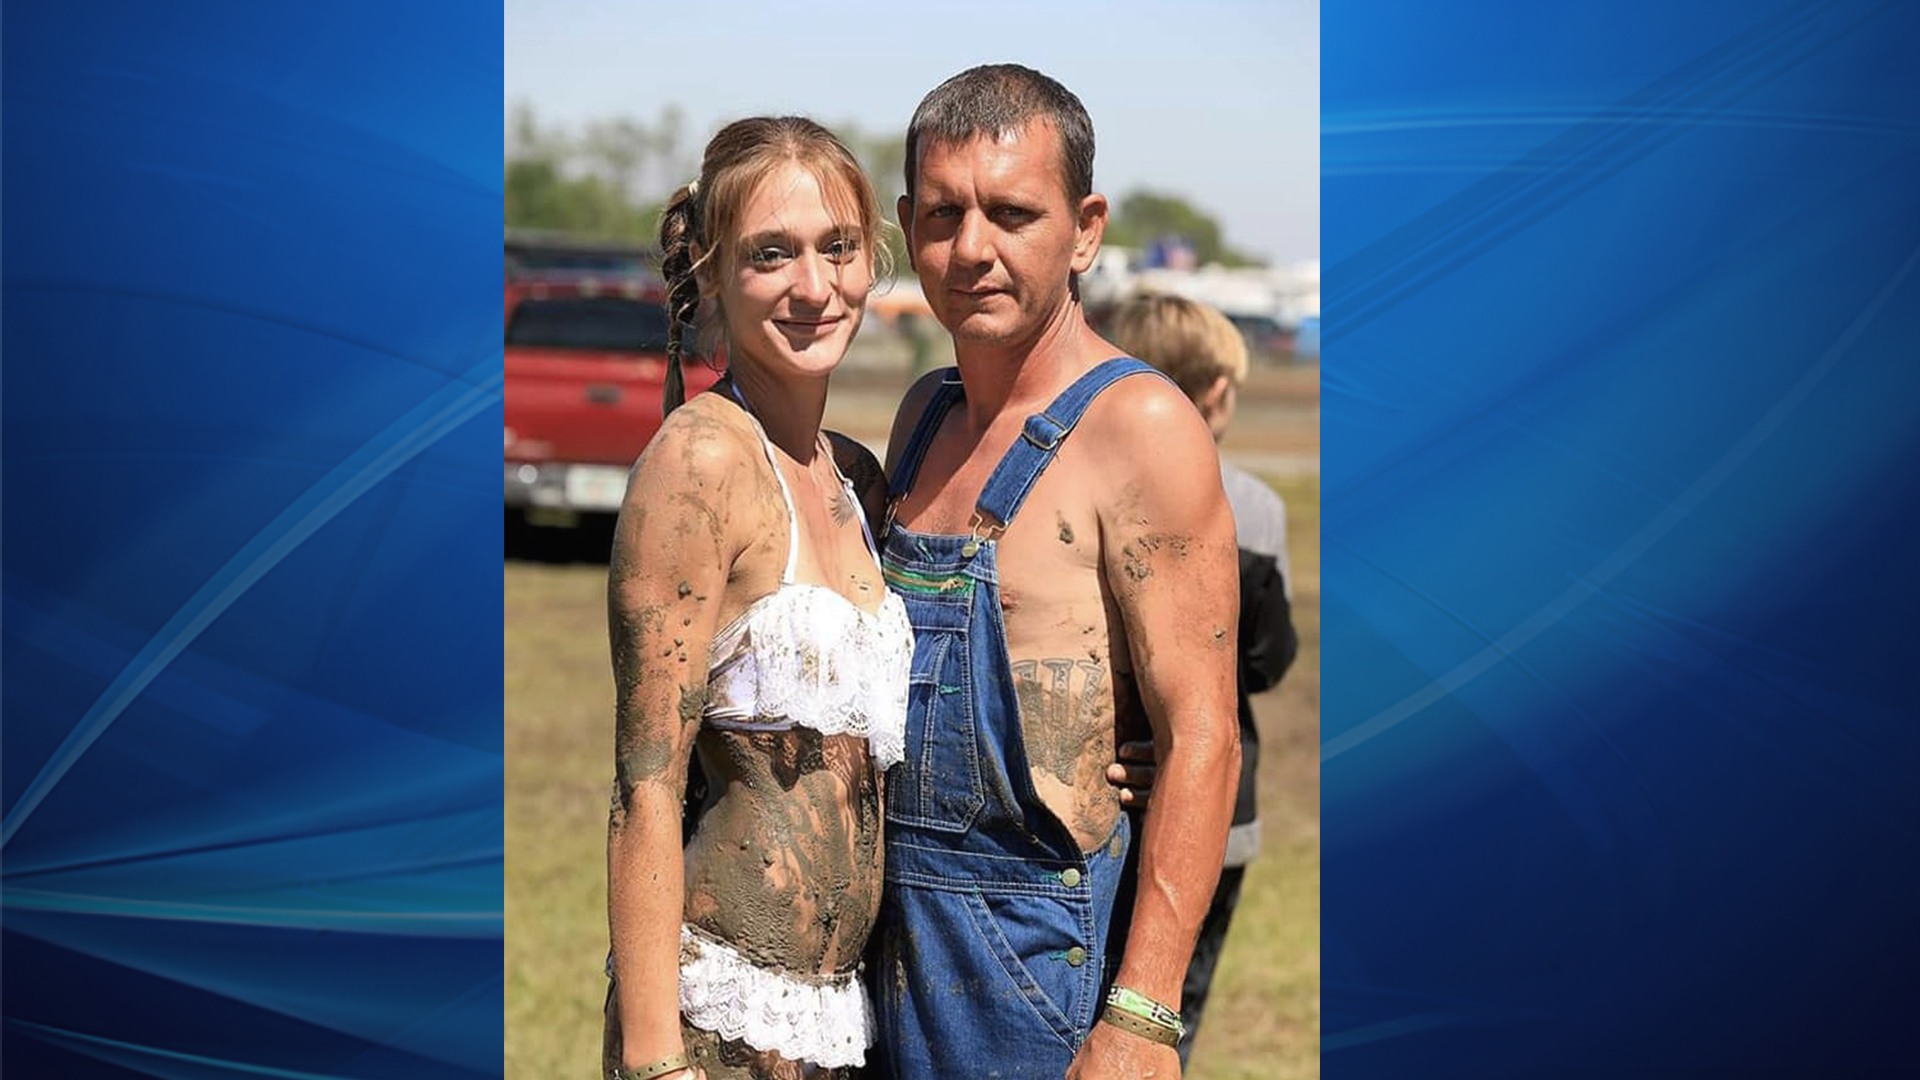 Hillbilly dating how to write an online dating profile